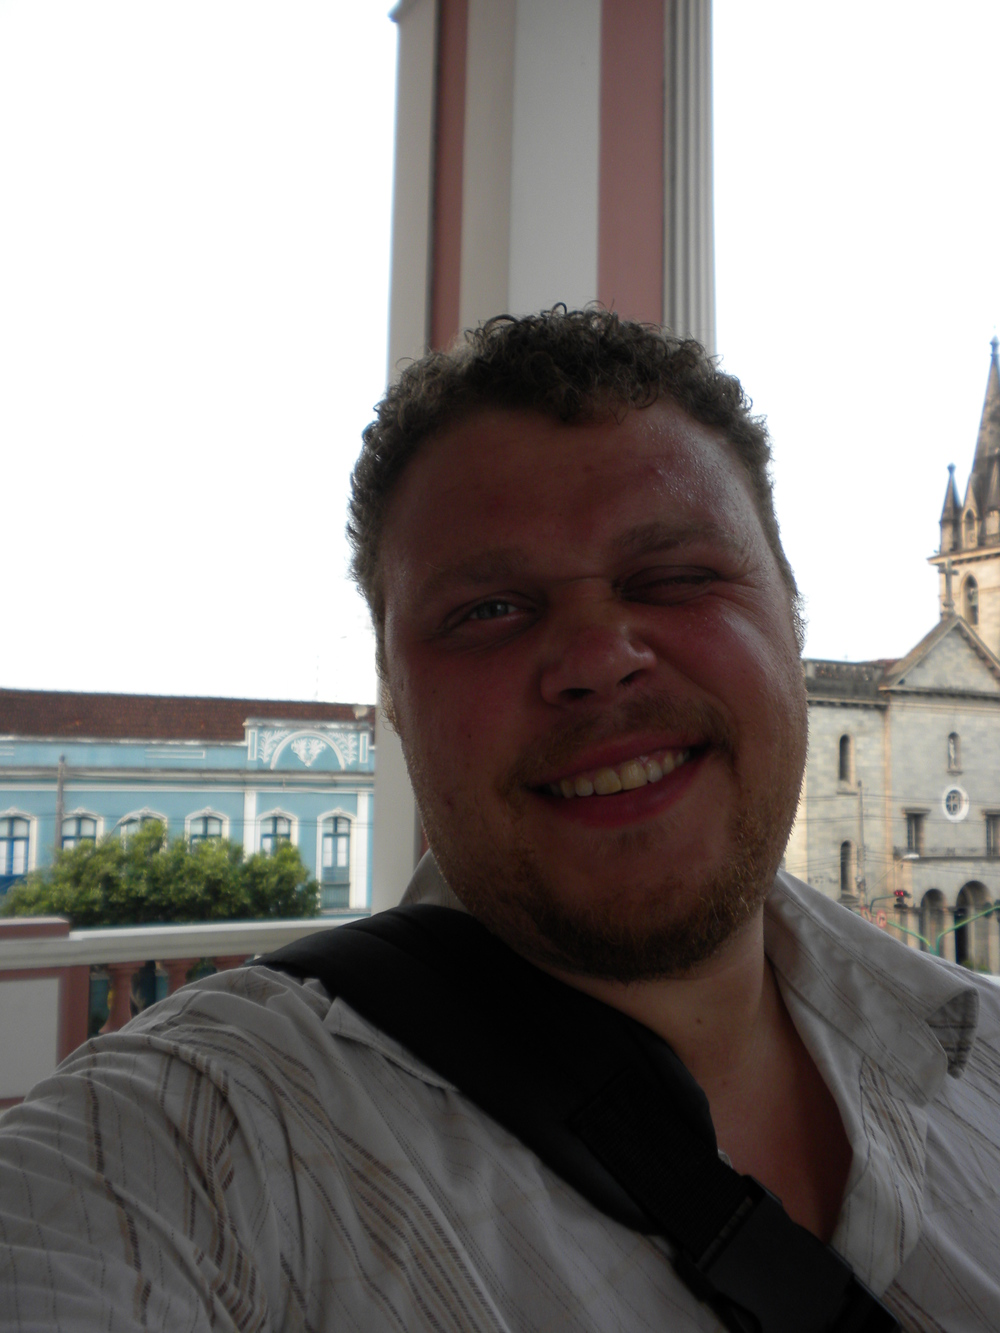 Yep... all my hair is gone! Me in Manaus at the Teatro Amazon with all my hair gone.